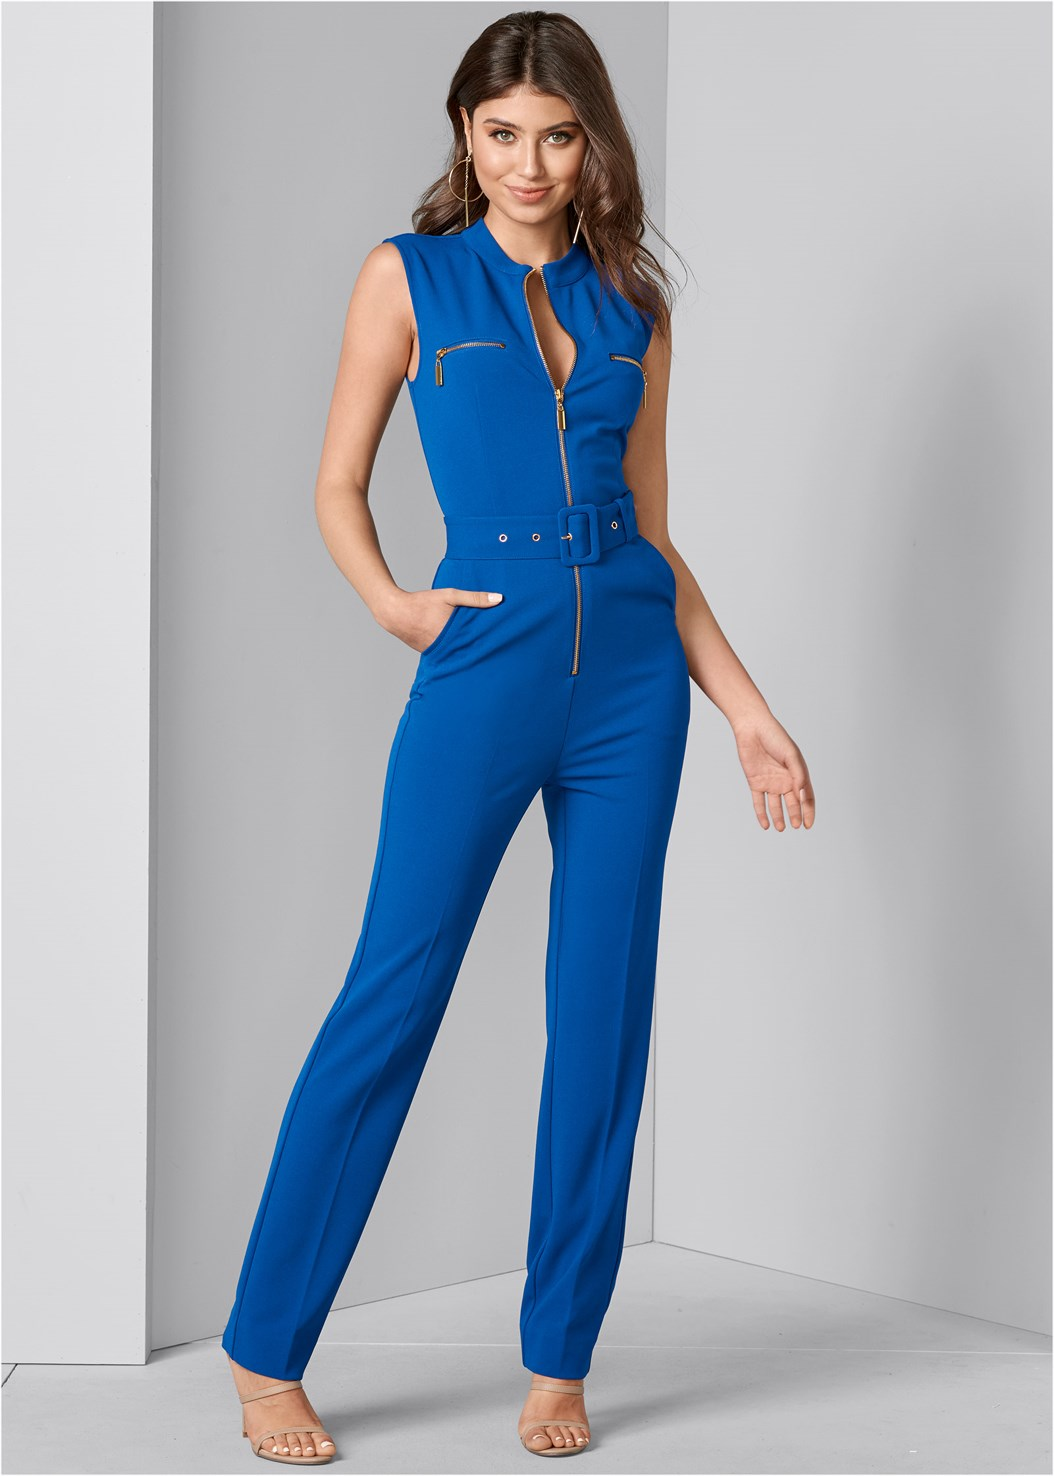 Belted Jumpsuit,Satin Lace Bra/Thong Set,High Heel Strappy Sandals